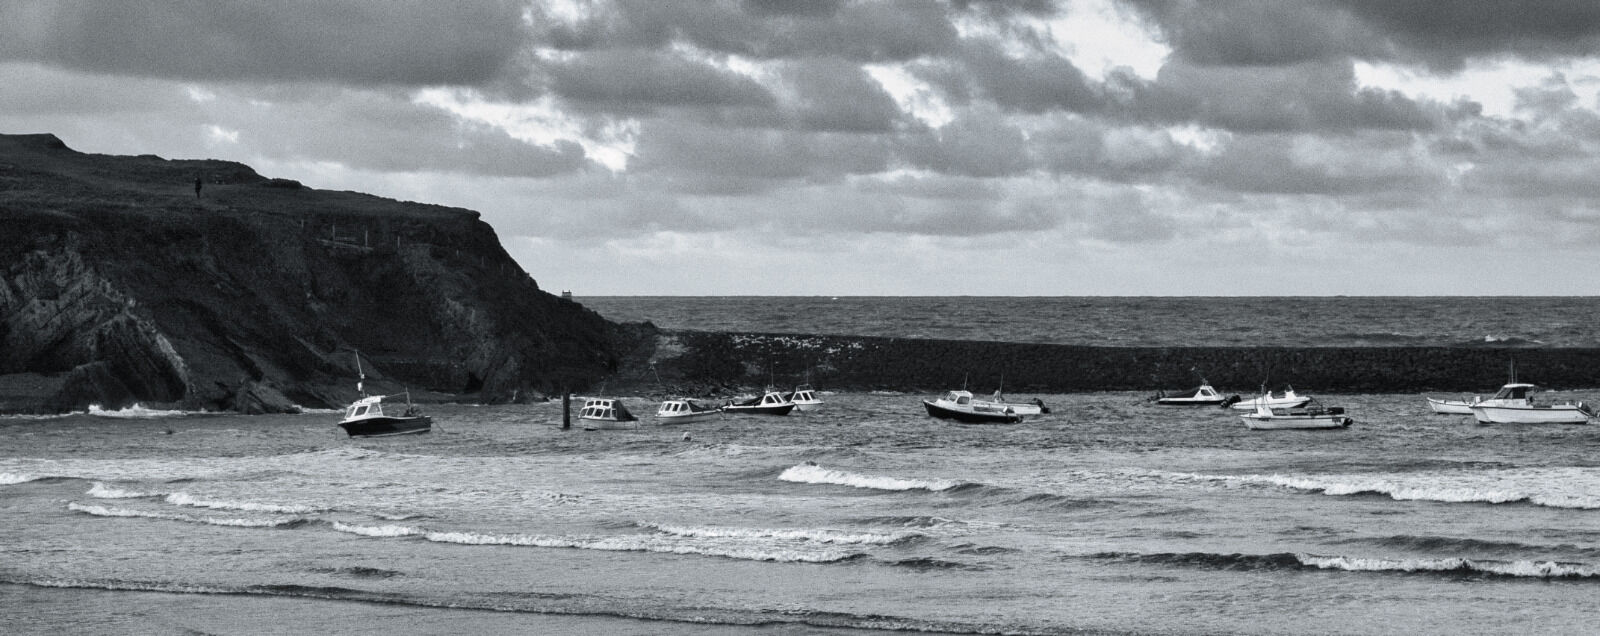 Group C - First - Bude Harbour - Mike Helft